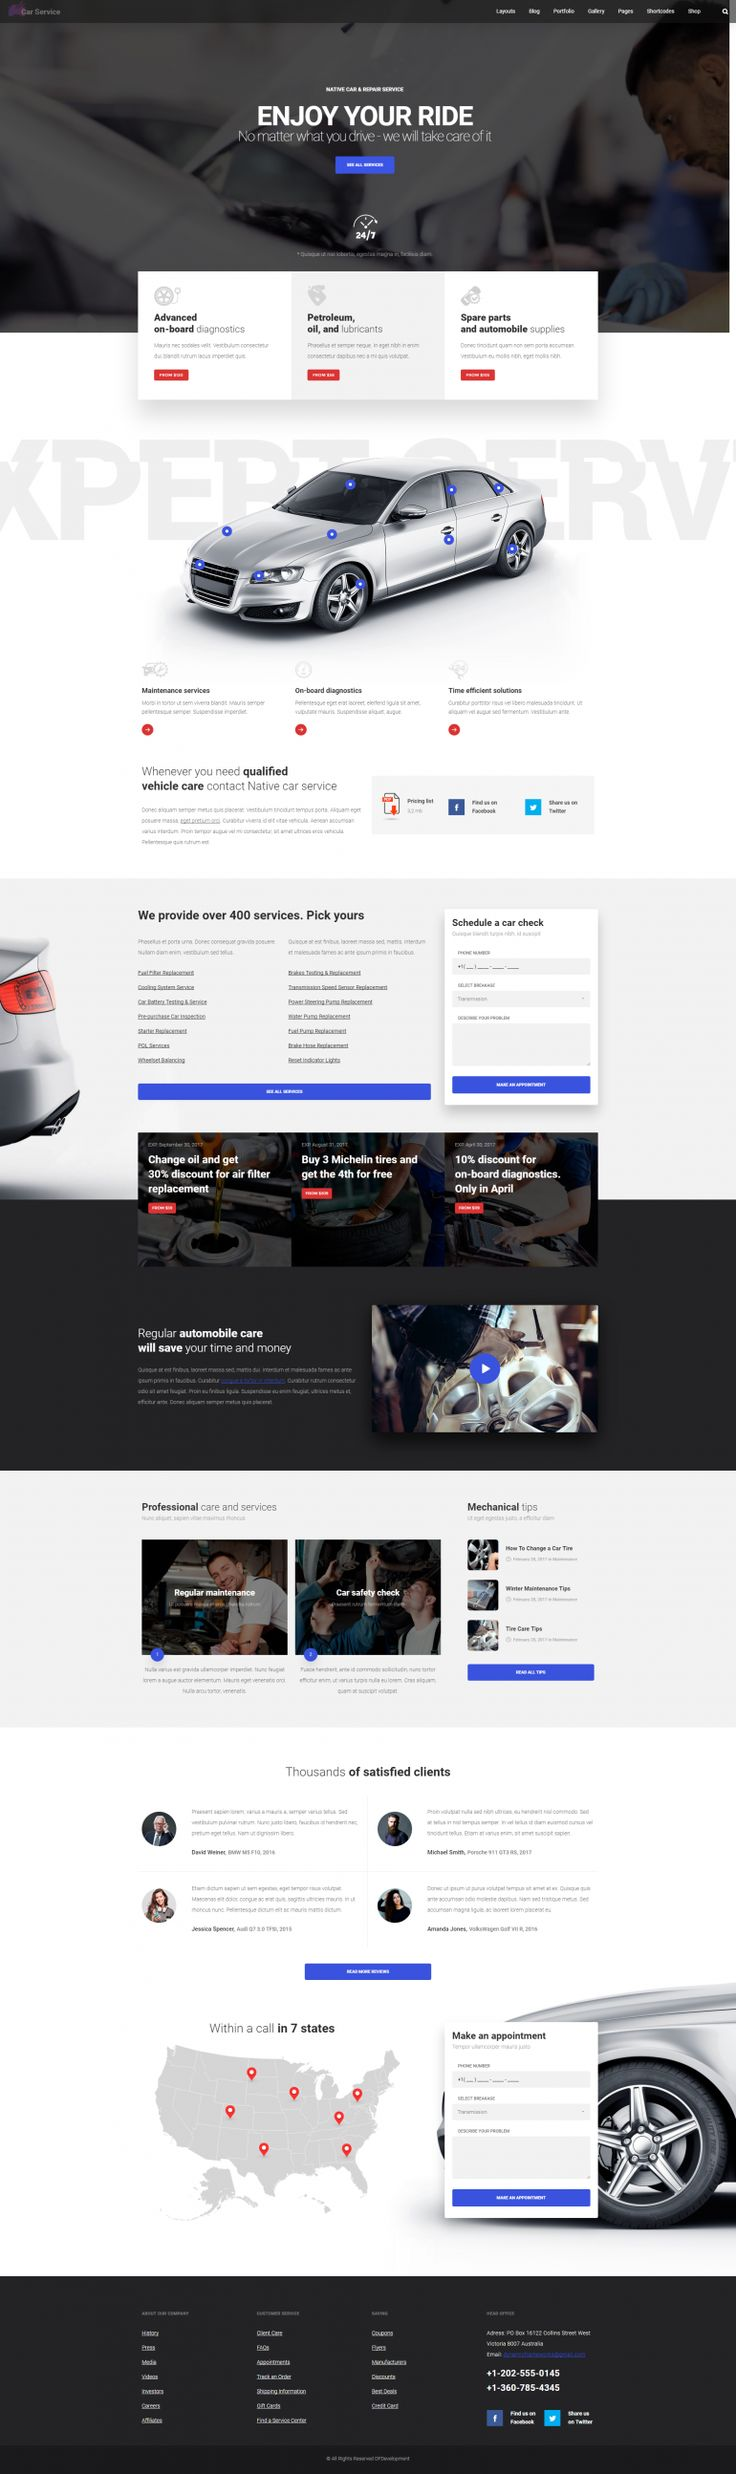 Native – Car Service Landing Page